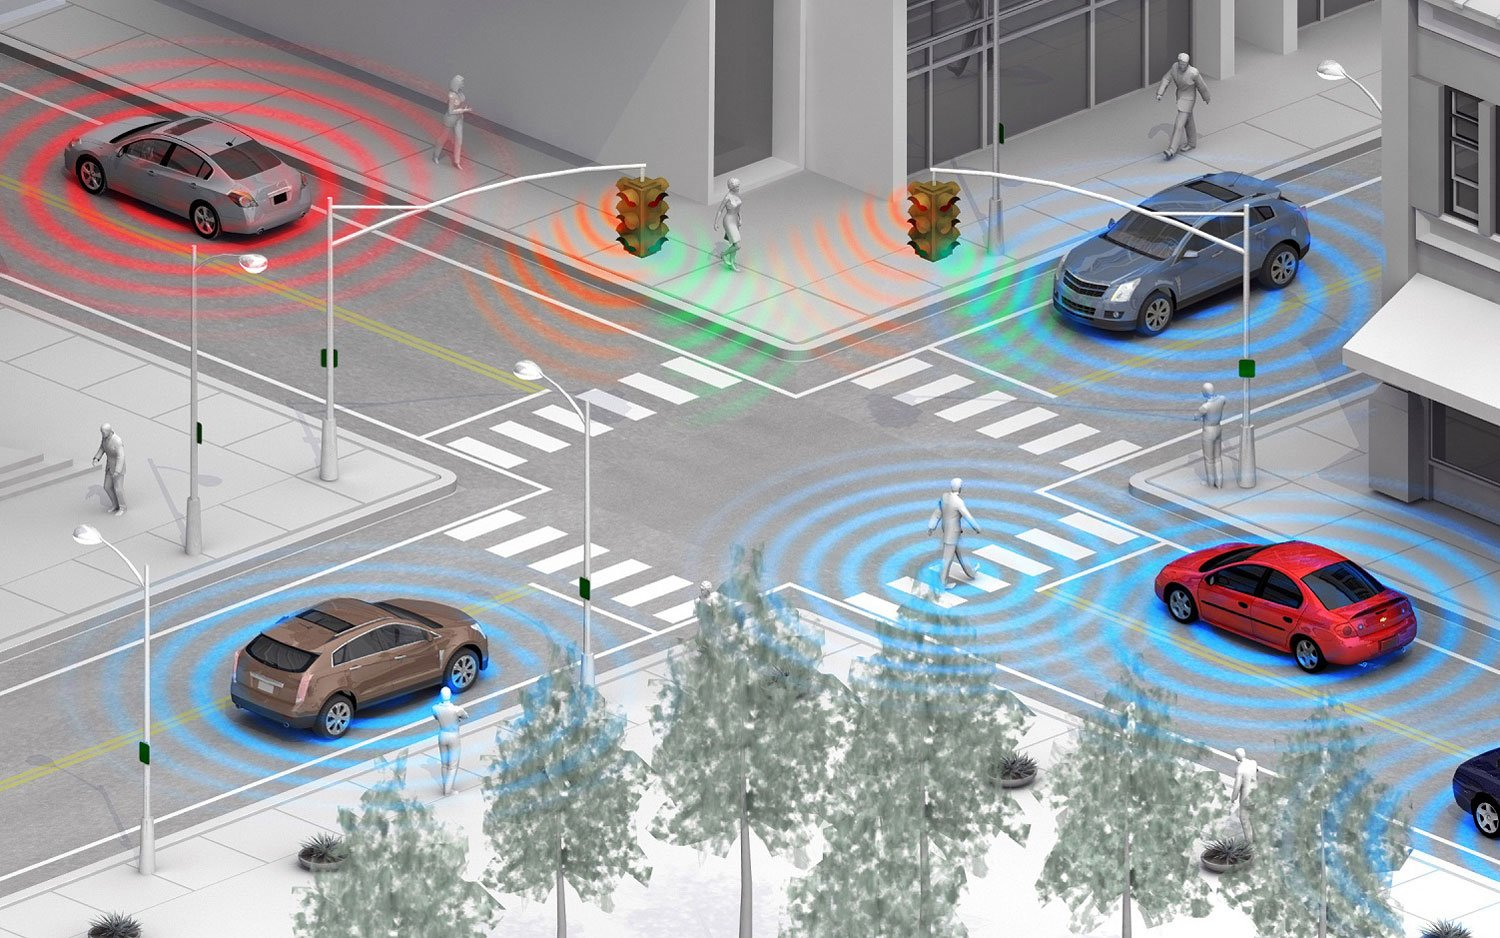 Do we really need this? Well, the answer might be never the less. The phrase V2V, meaning vehicle-to-vehicle communication, gets tossed